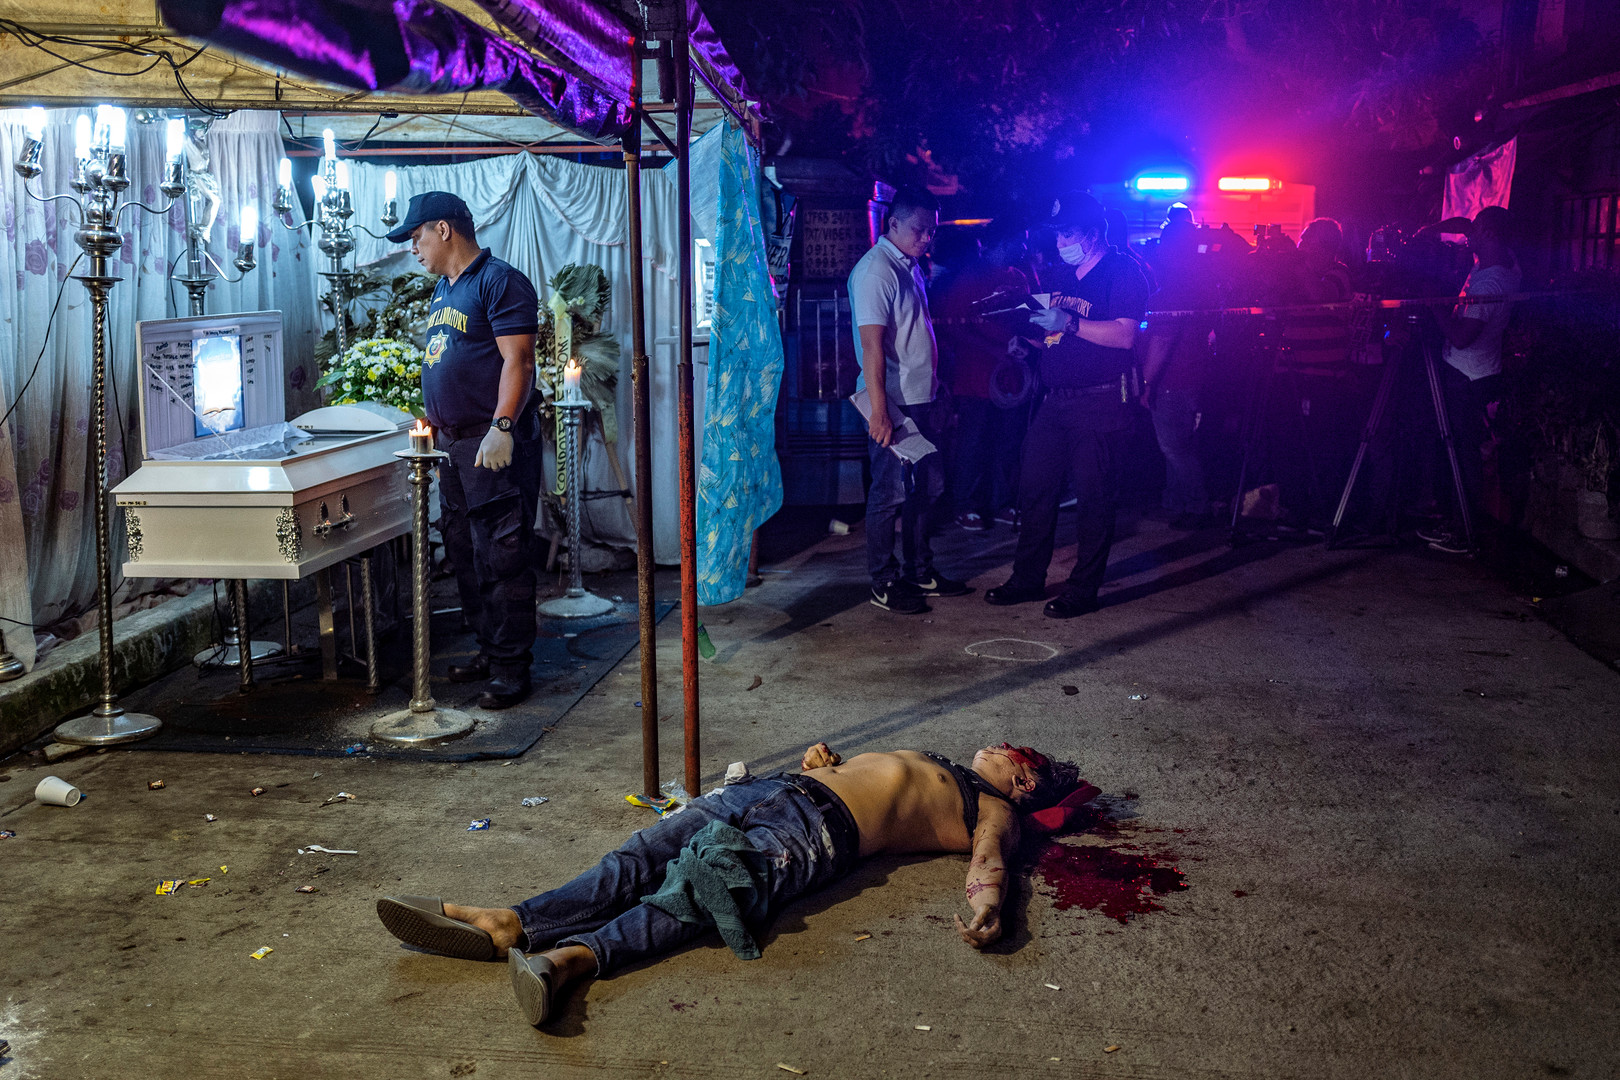 The body of Michael Nadayao lies dead on the street next to a funeral wake, after he was shot dead by unidentified men  in front of mourners, in Quezon city, Metro Manila, August 31, 2018.